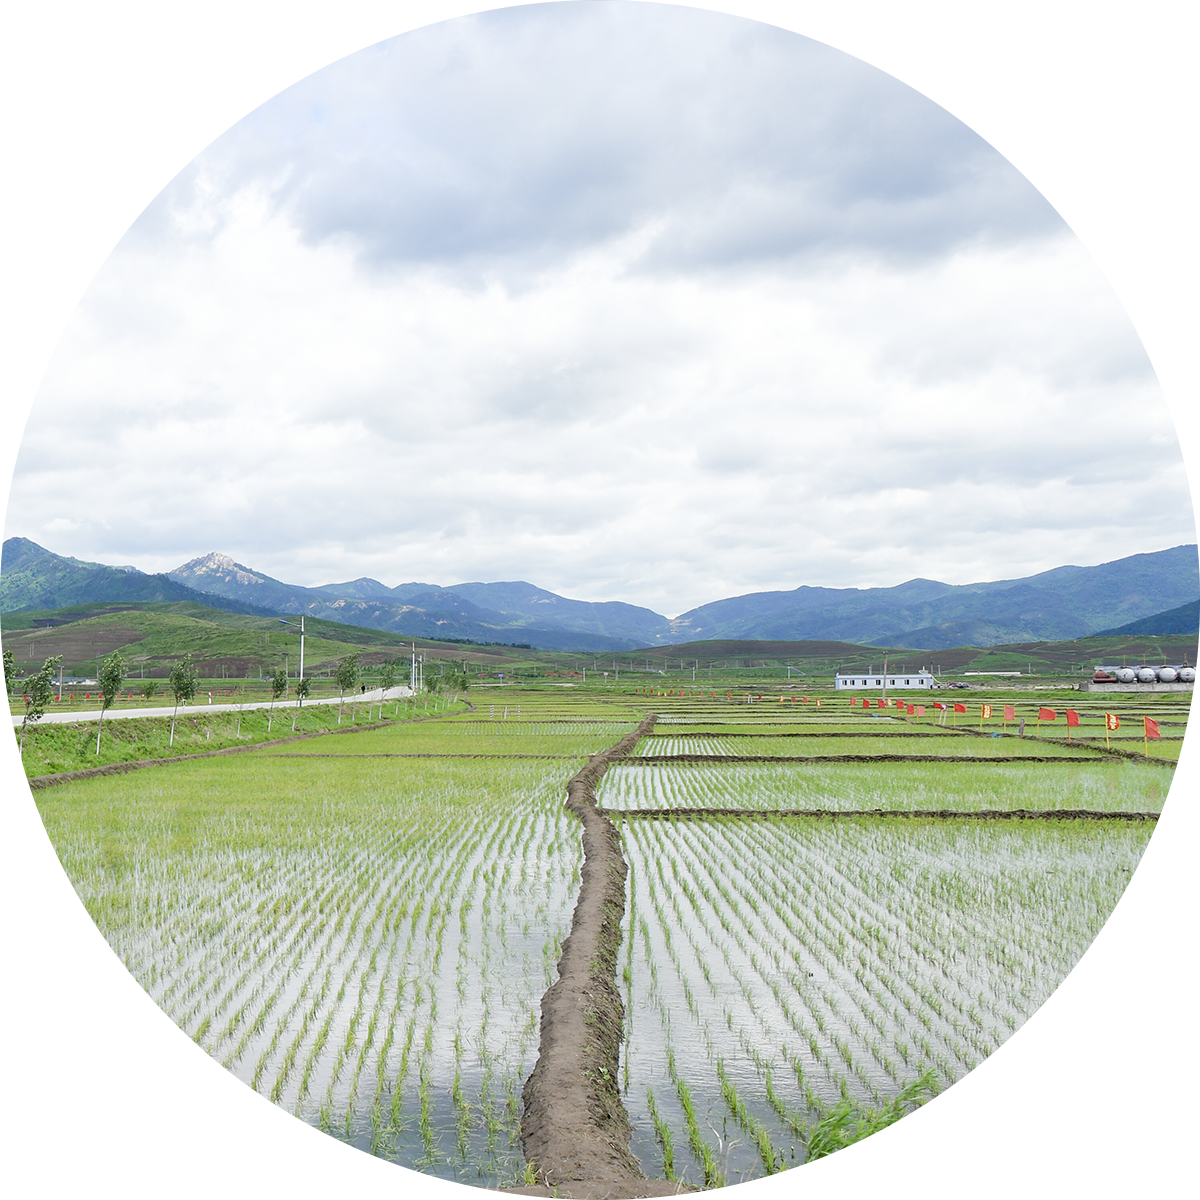 North korean harvesting service. Rice clipart rice cultivation